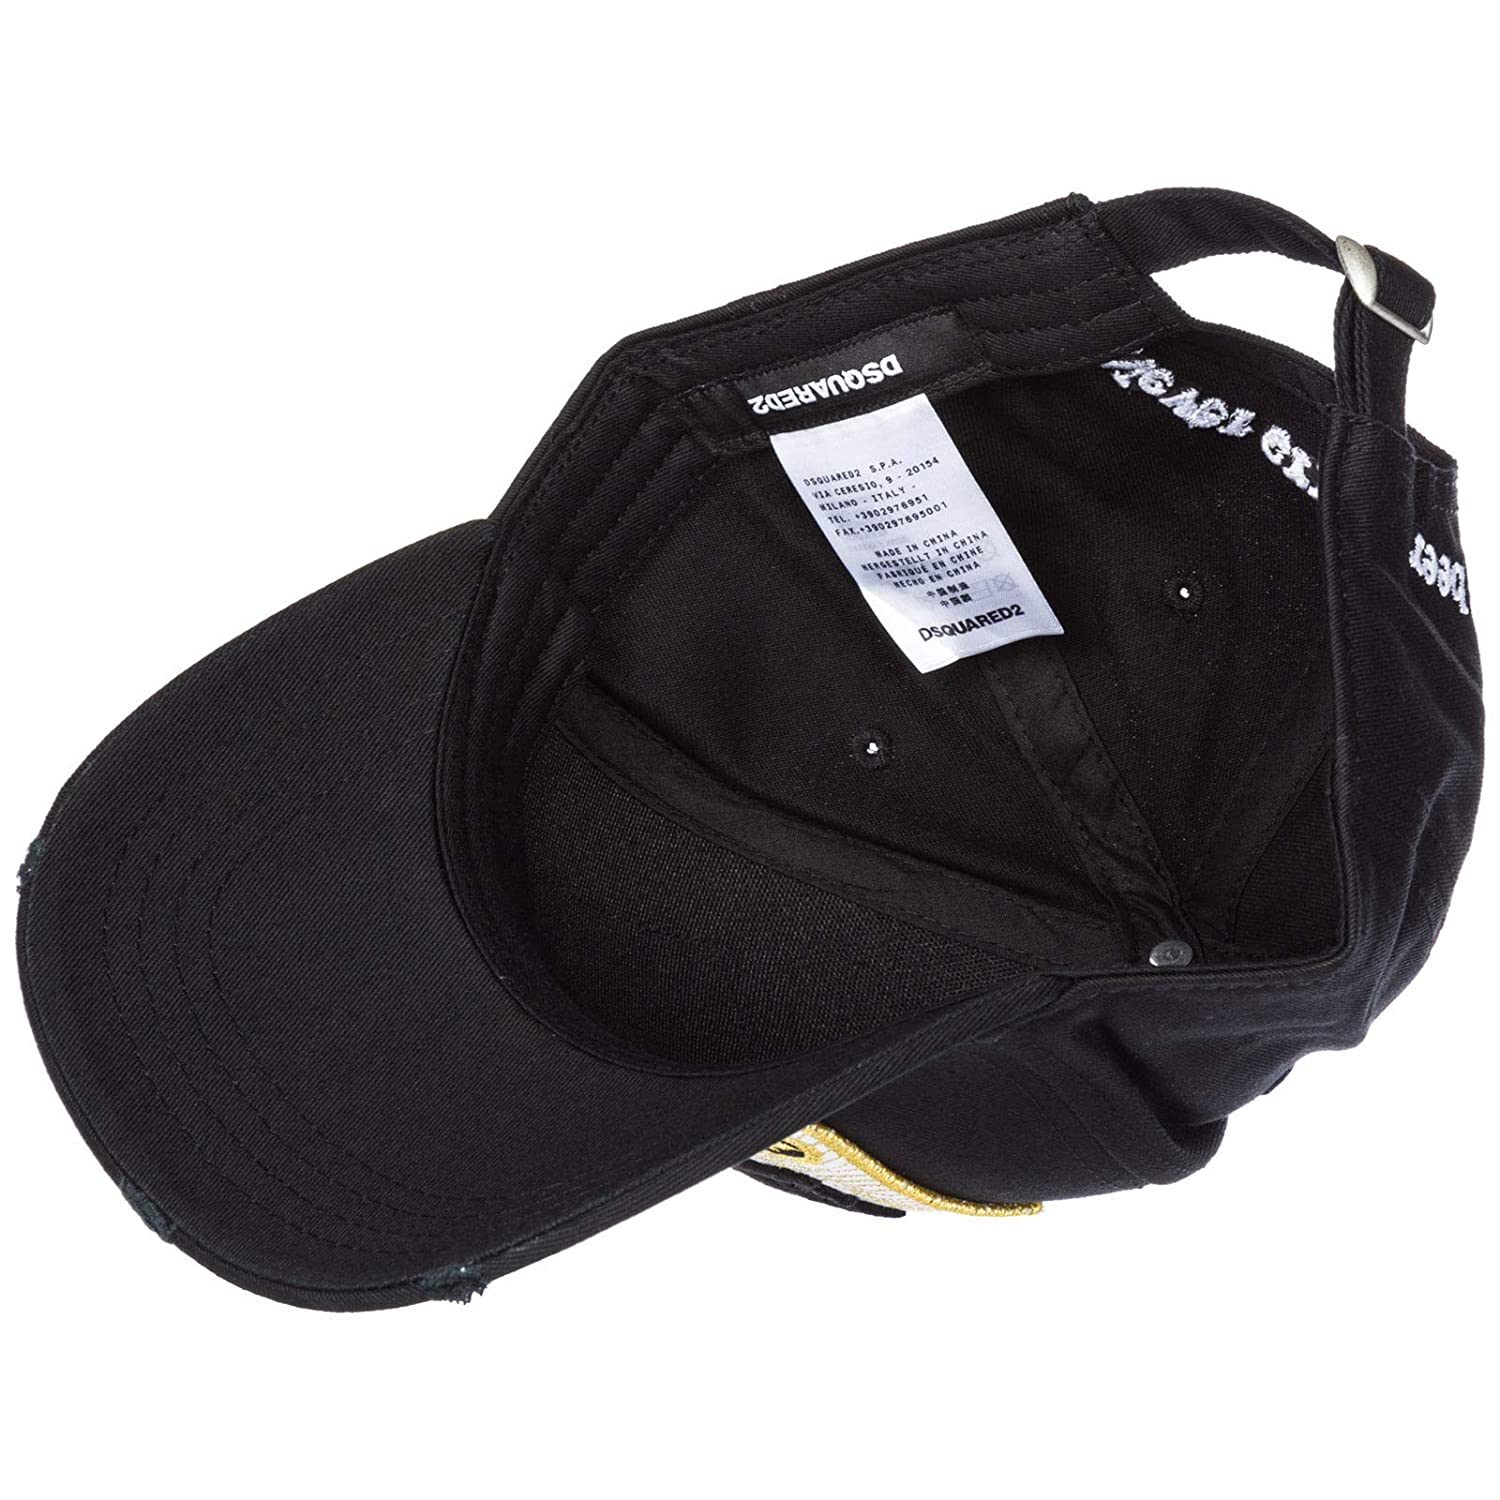 ca6d5a1bd8d52 Dsquared2 Men Canadian Brothers Baseball Cap Nero  Amazon.co.uk  Clothing